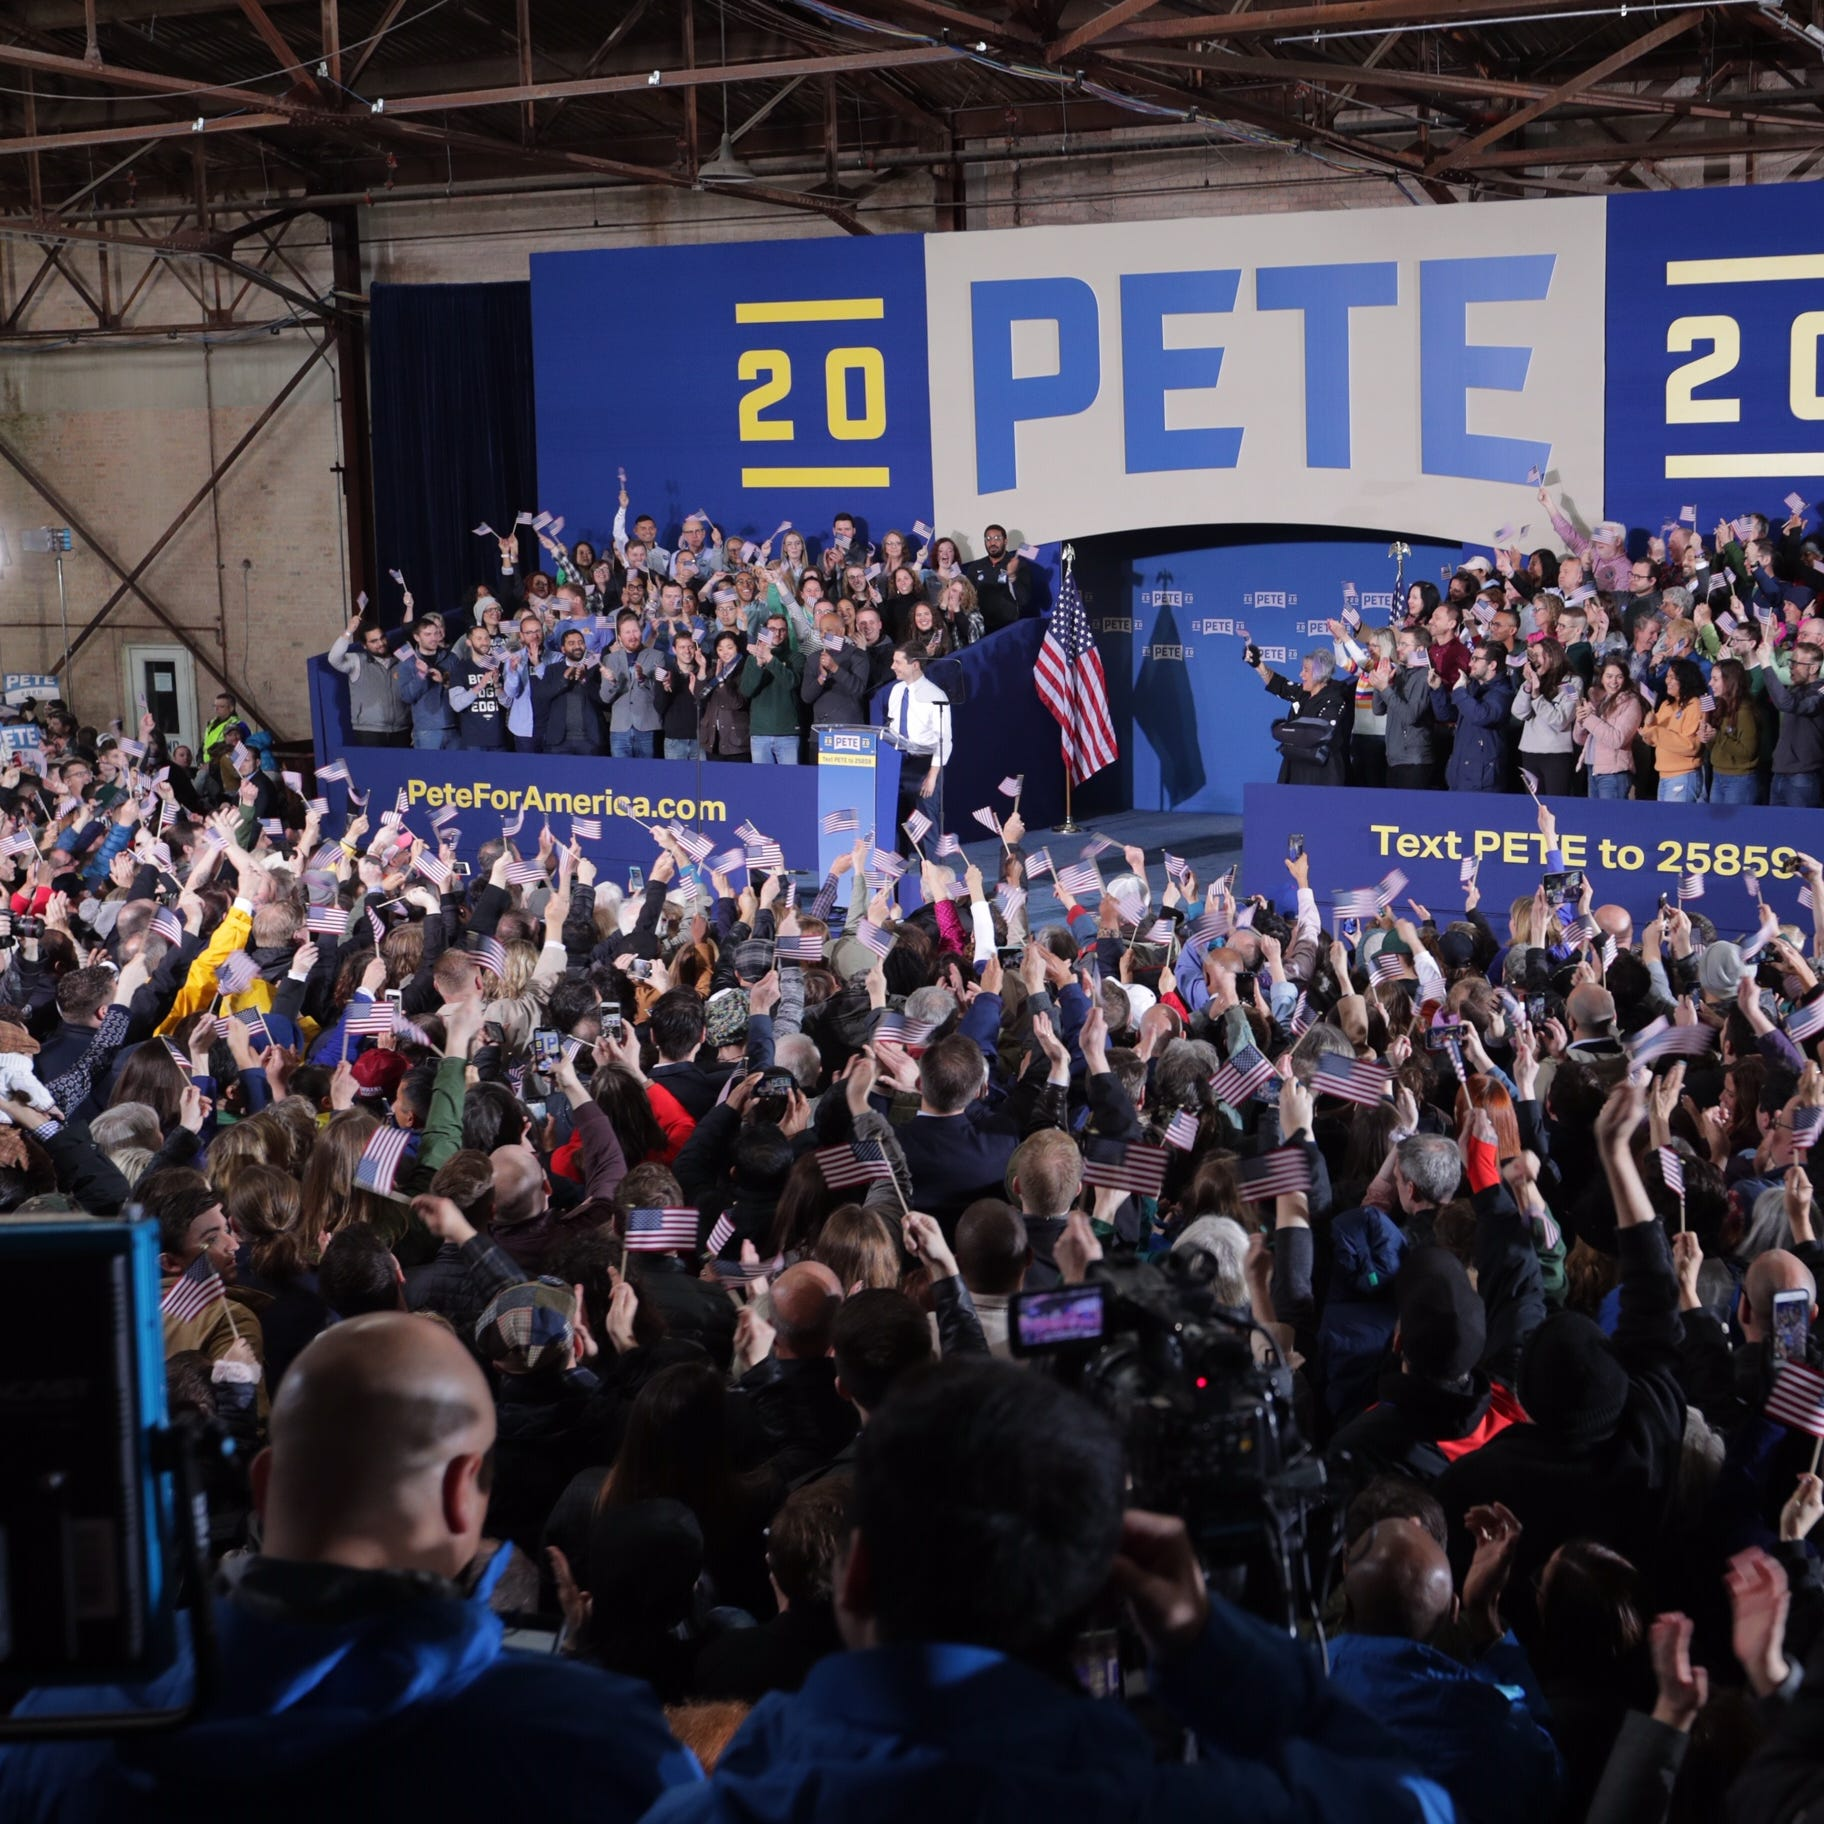 GOP, supporters and celebs react to Pete Buttigieg's 2020 presidential bid announcement